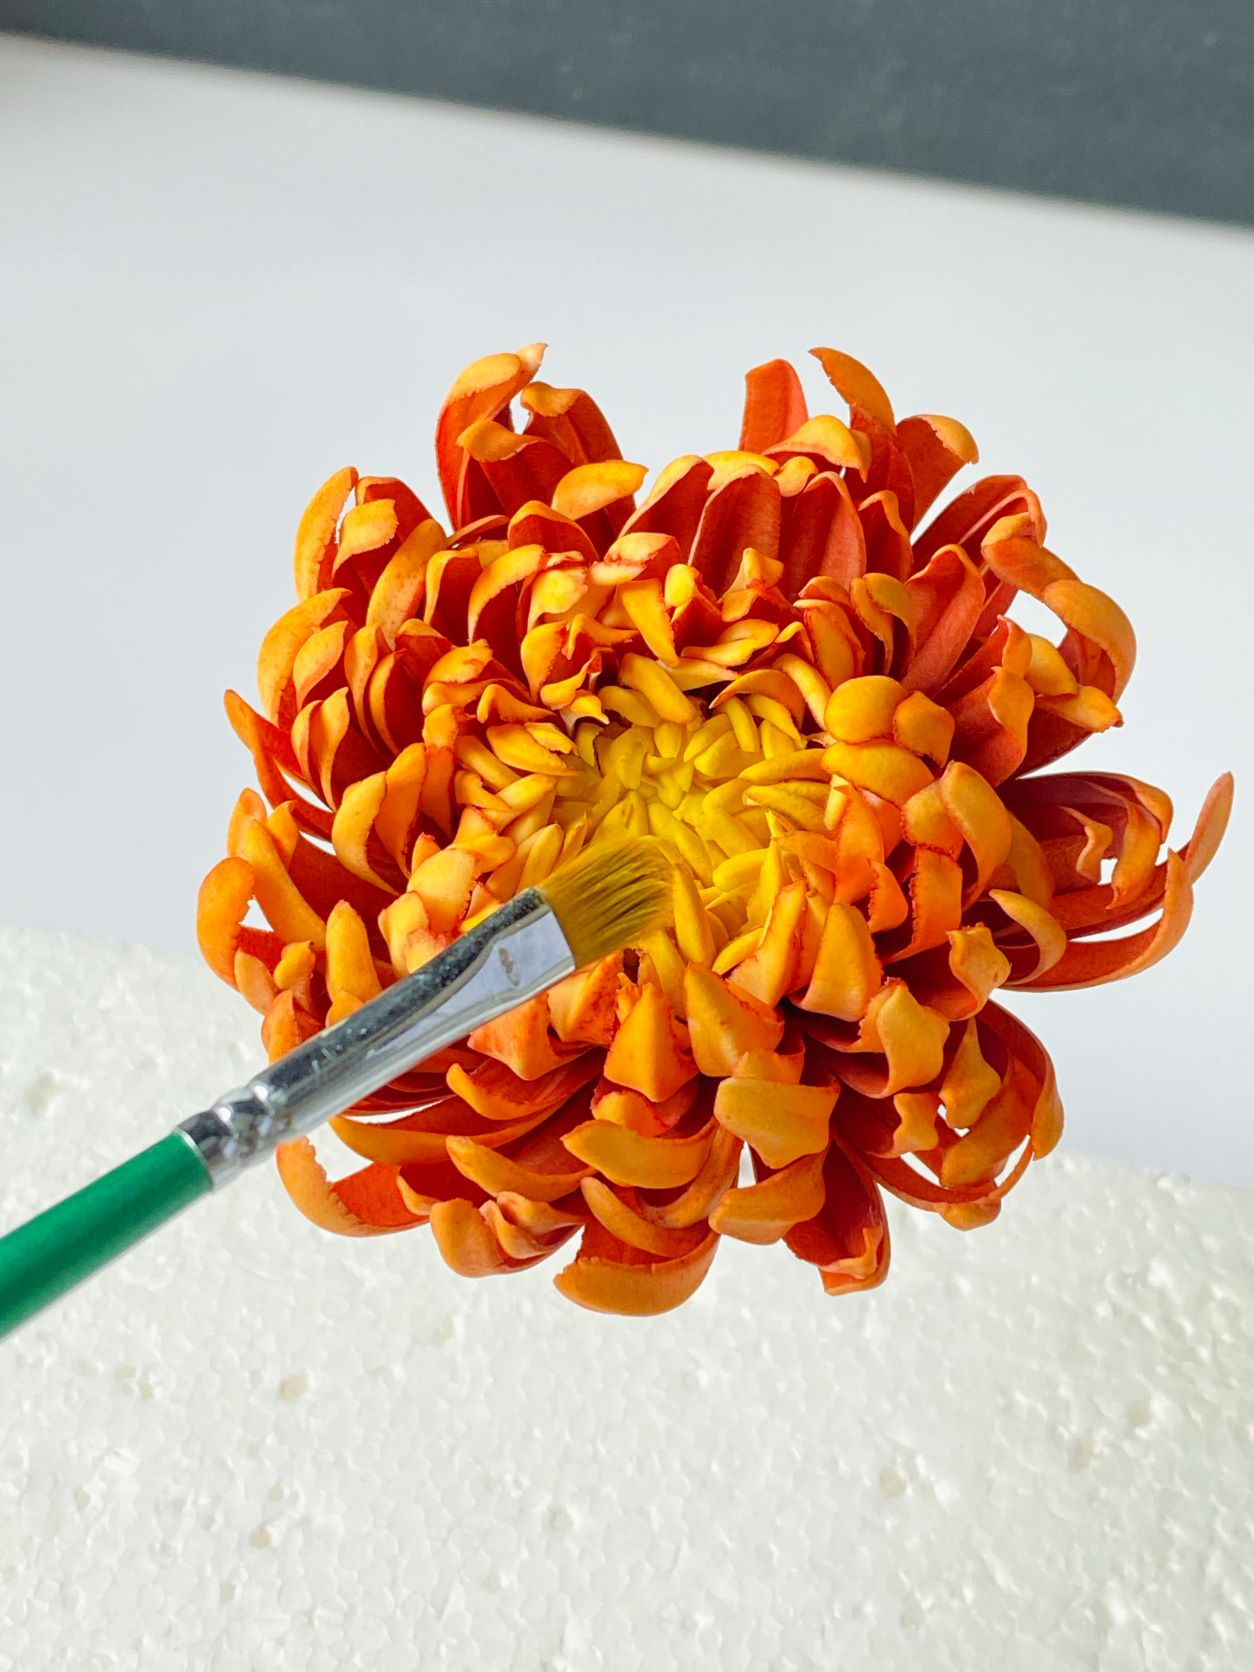 Carefully cut and paint sugarpaste flower petals